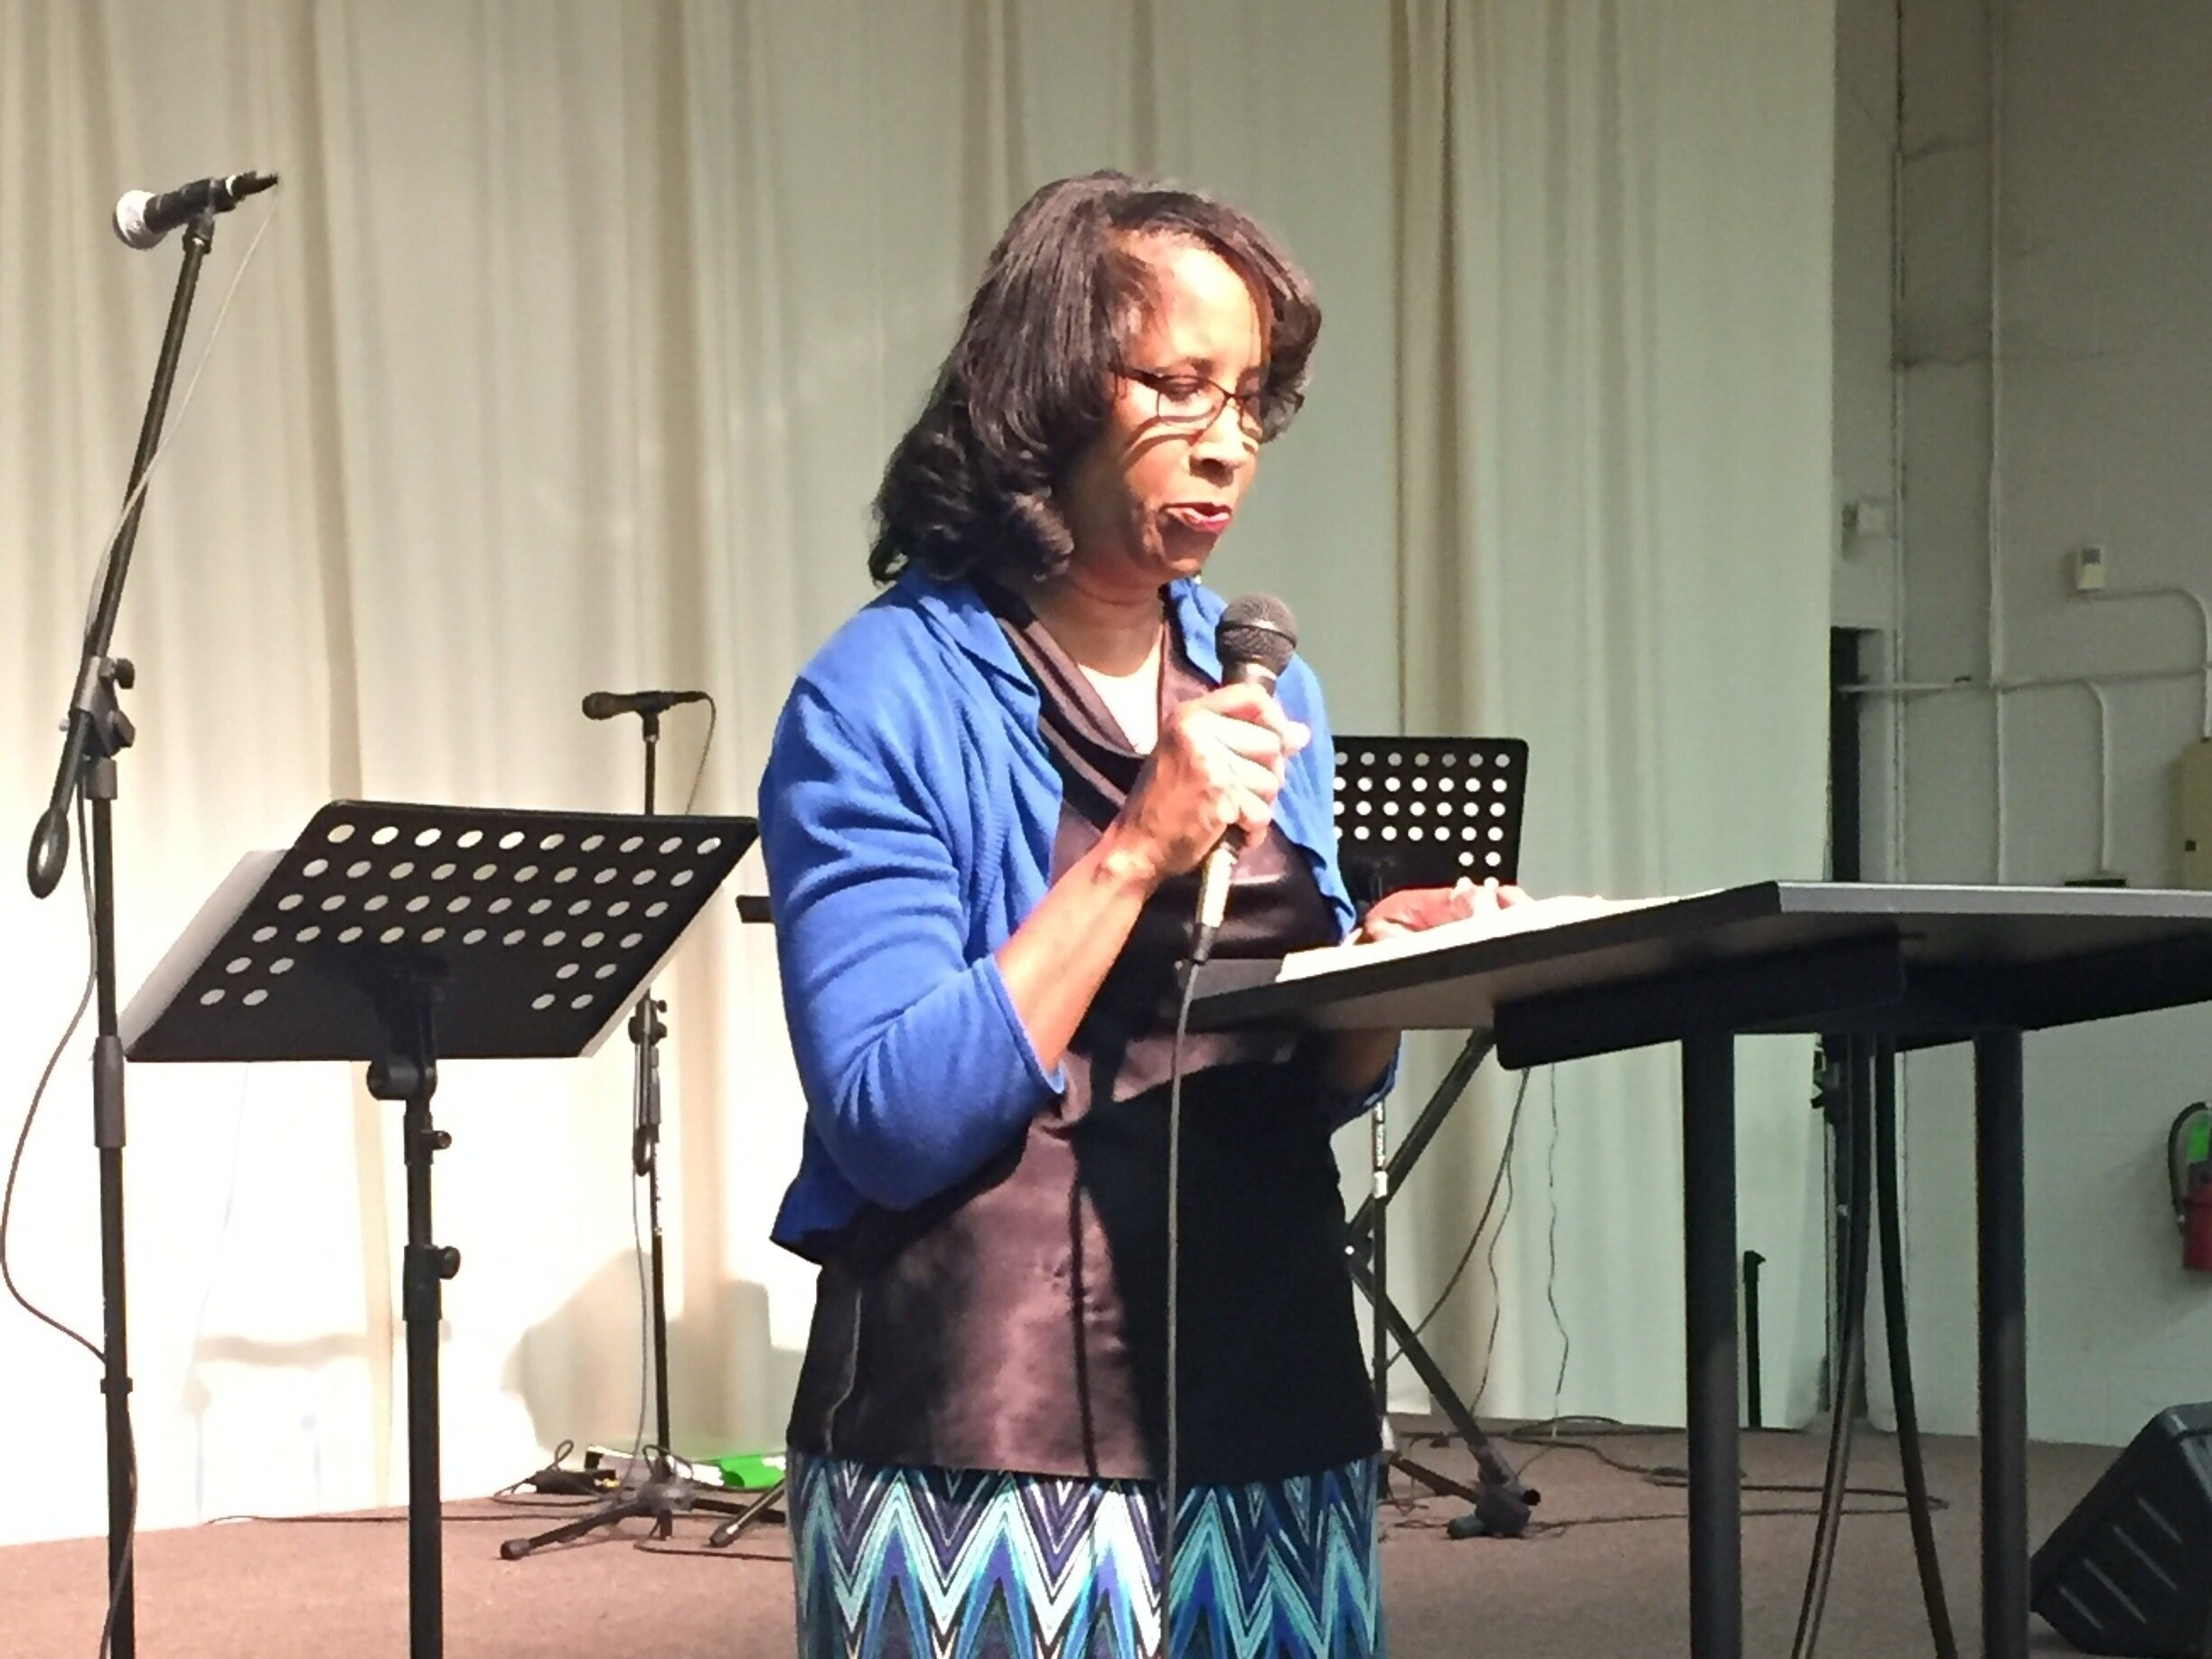 Scripture Reading - Reading the Bible during our Sunday service is a great way to encourage others by simply…reading. Jump in as we're going through John's gospel. Sign up here.